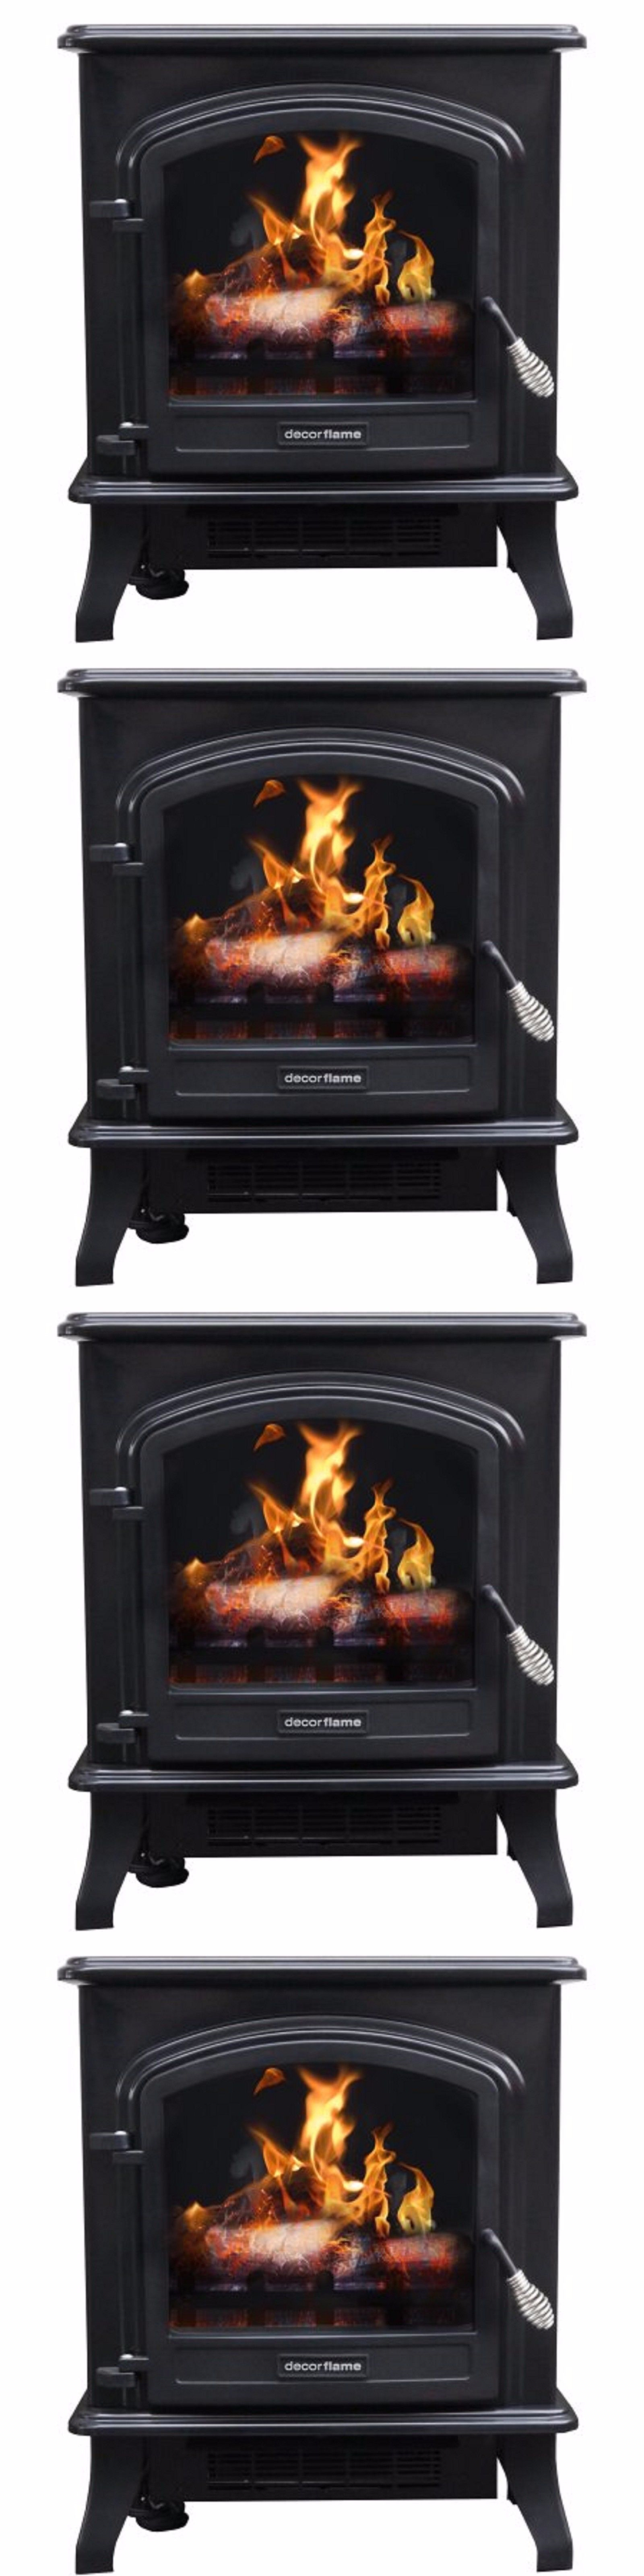 andirons grates and firedogs 79648 decor flame infrared stove